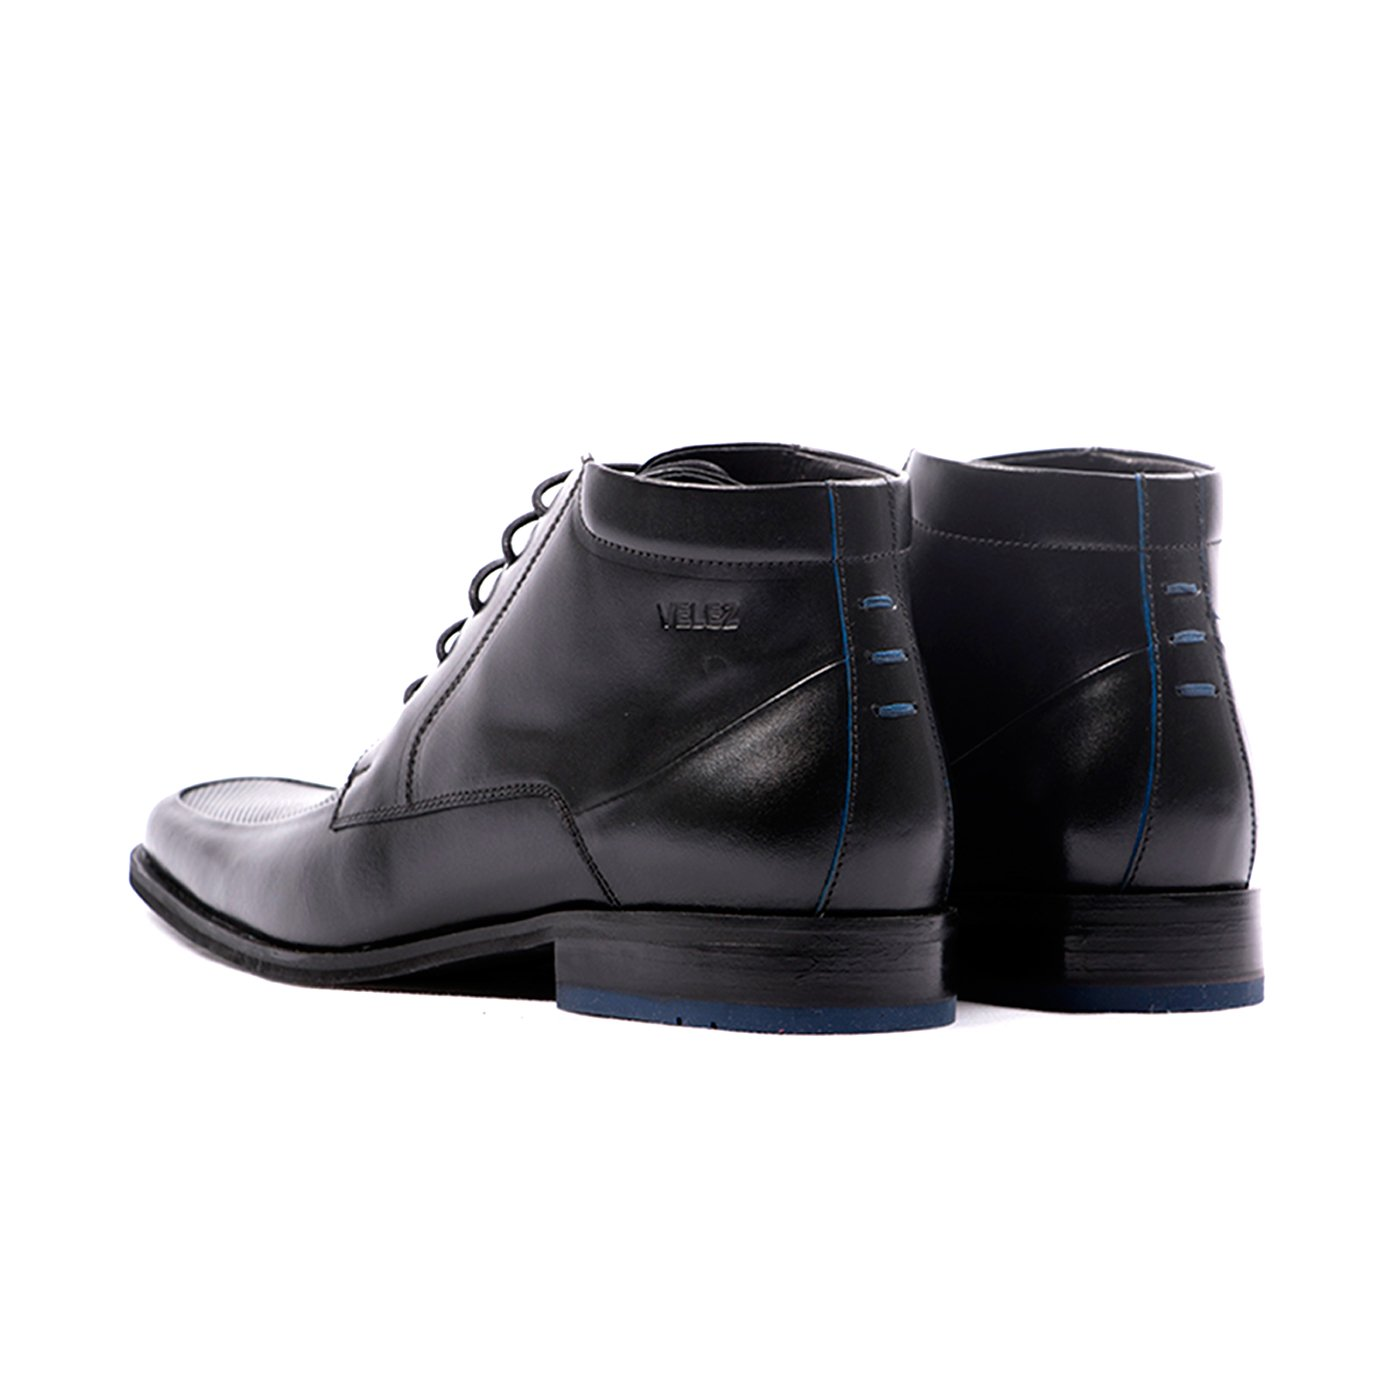 Amazon.com: VELEZ Men Genuine Colombian Leather Dress Boots | Botas de Cuero Colombianas: Clothing